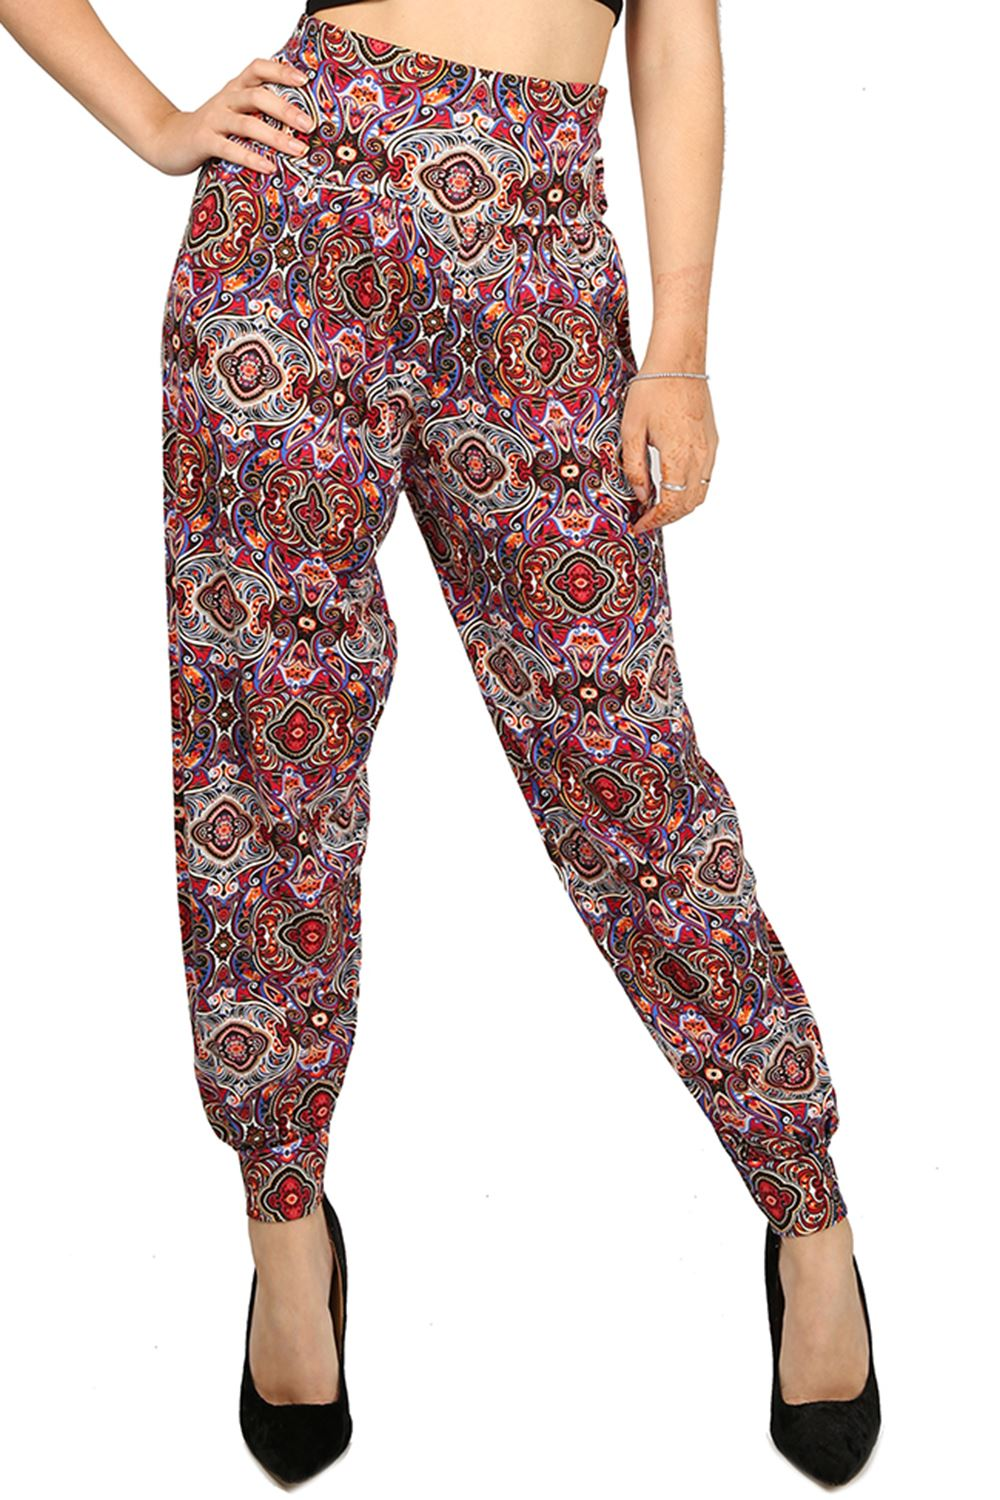 Find great deals on eBay for women harem pants. Shop with confidence.